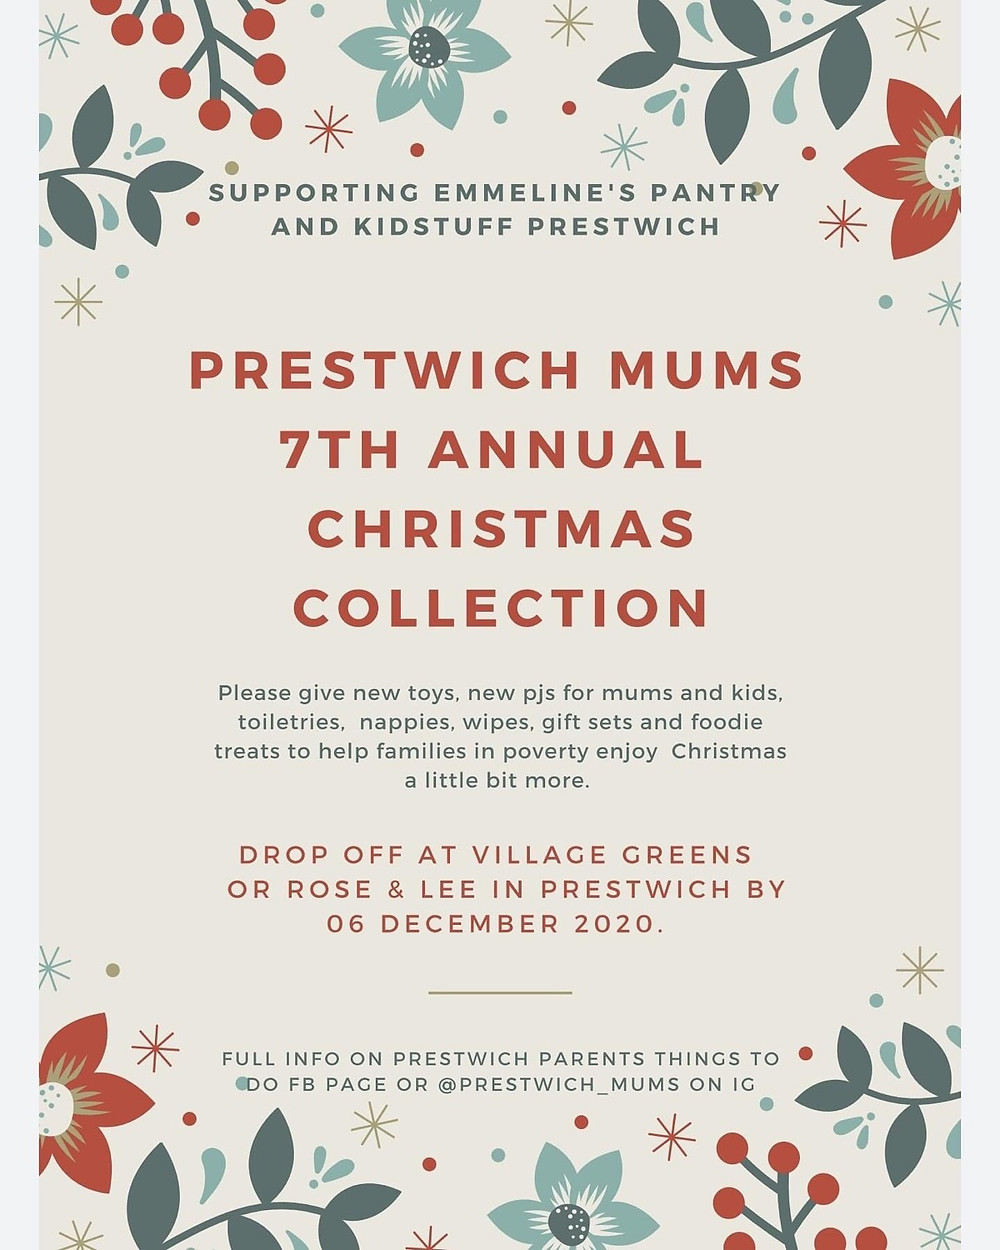 Prestwich Mums Annual Christmas Collection for Charity